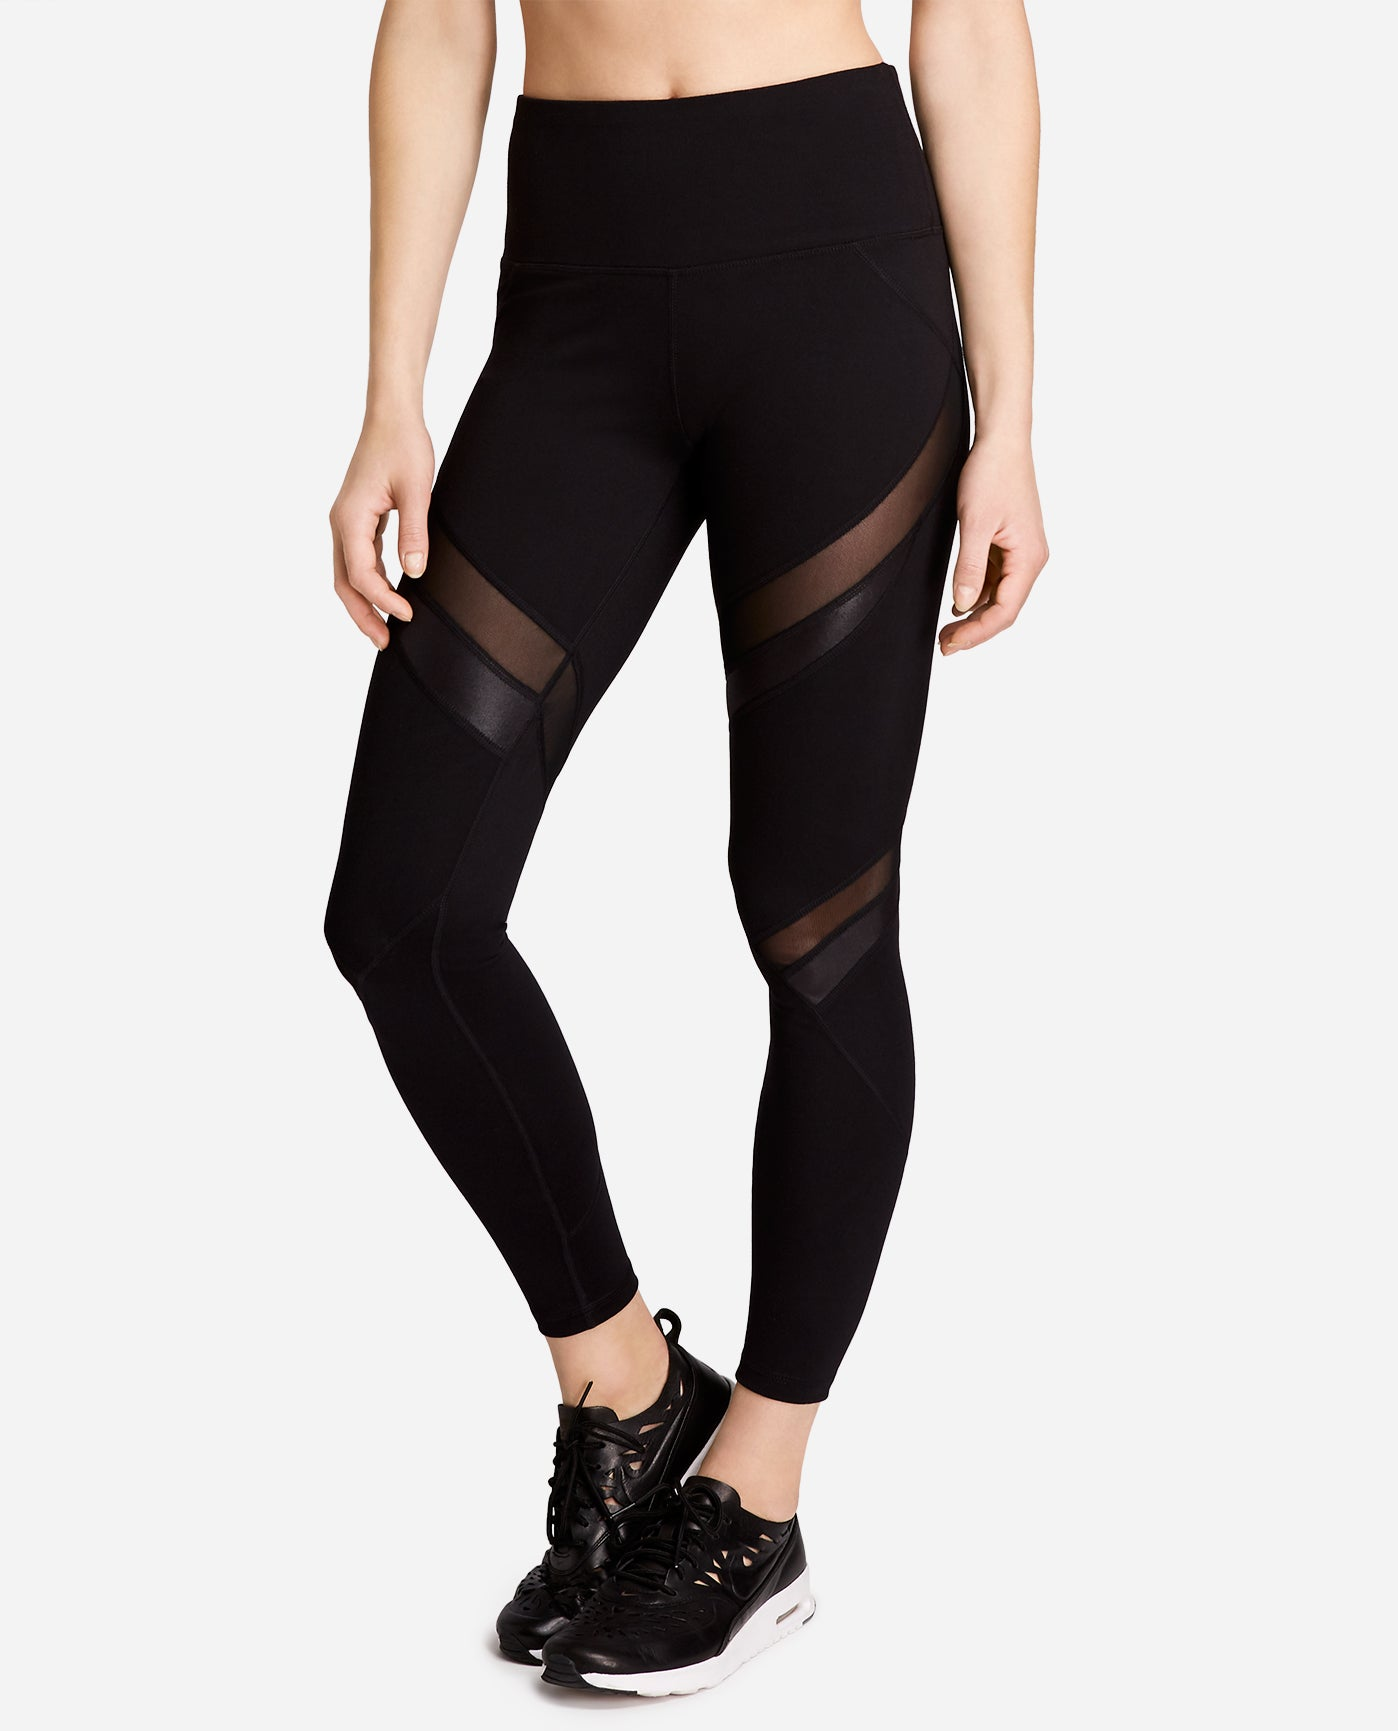 e2e3b69954750 High Waist Mesh Legging | Jenna Dewan Collection | Danskin